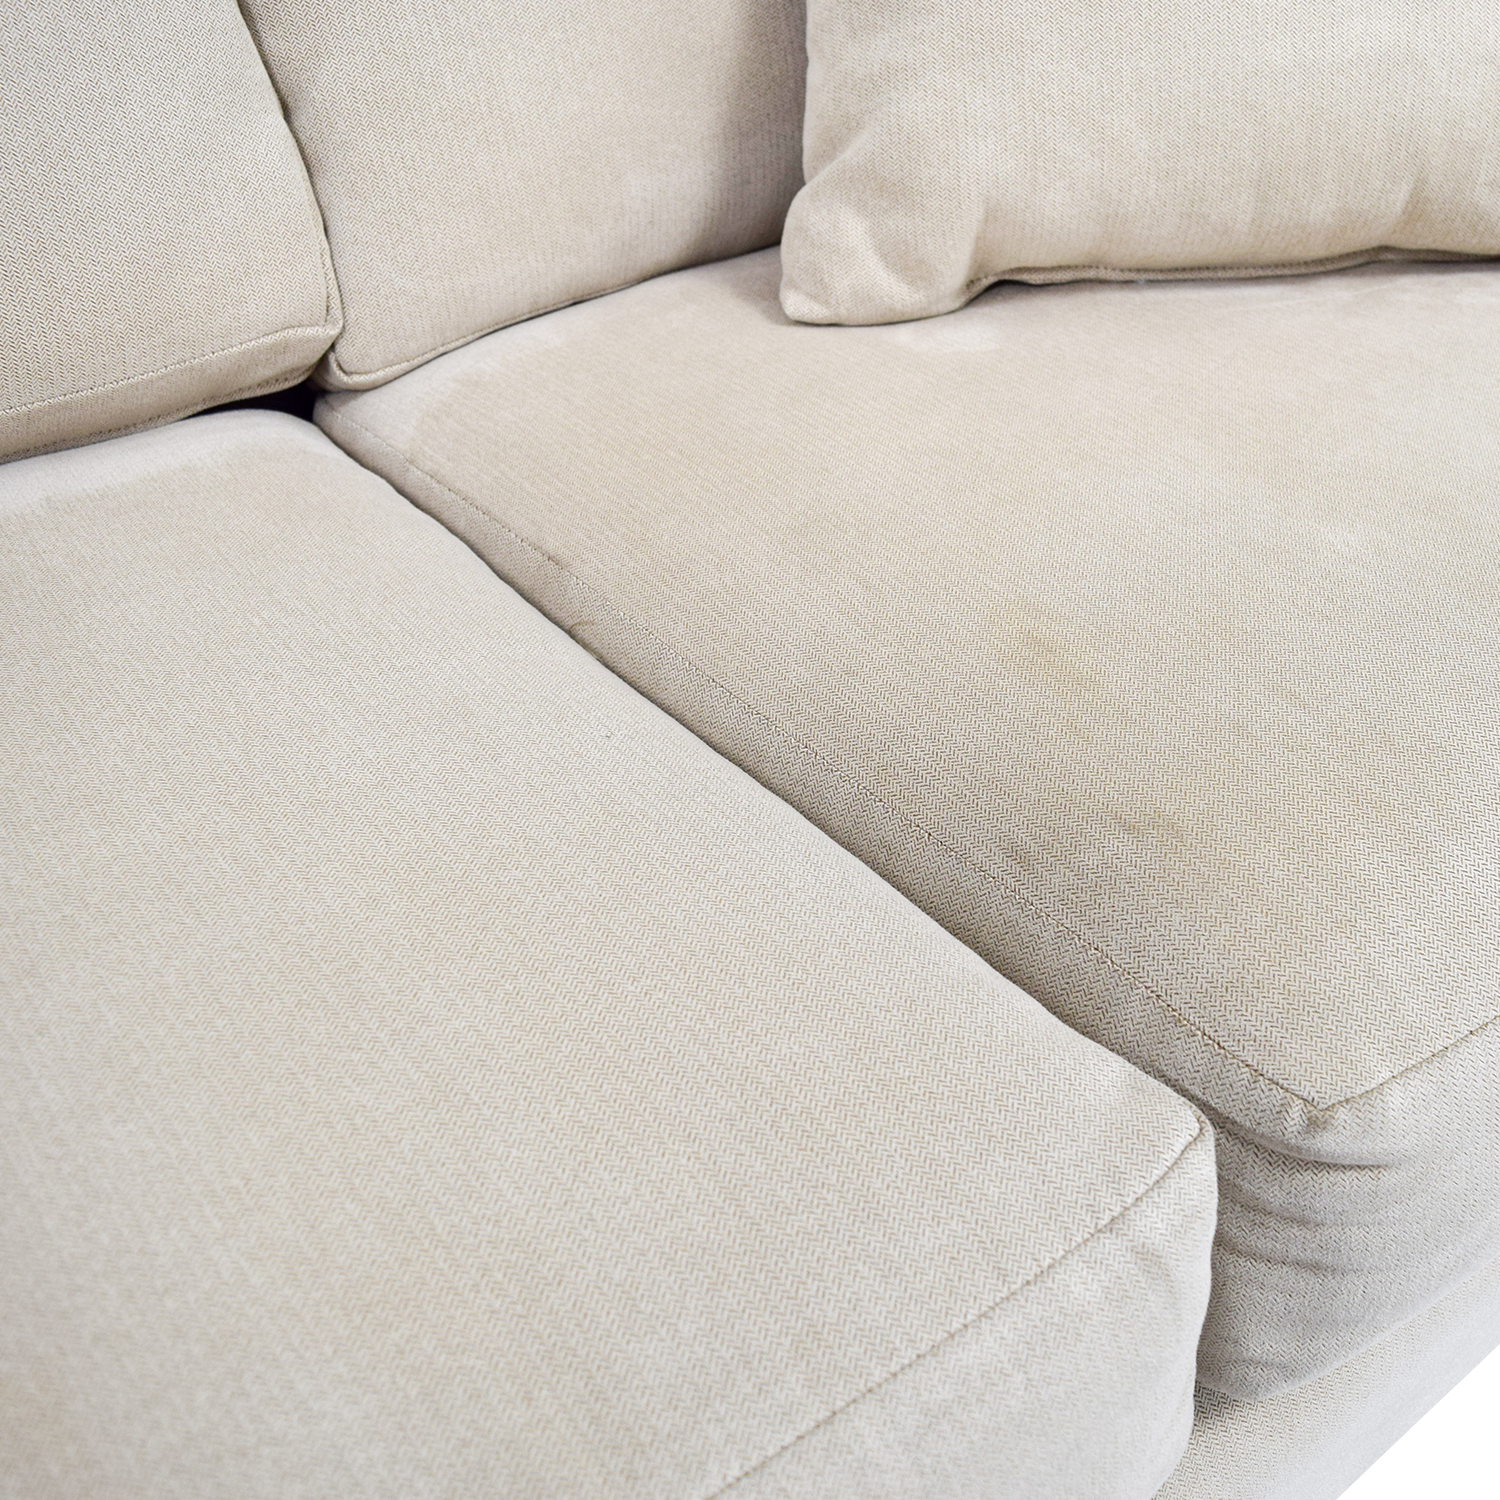 OFF Raymour & Flanigan Raymour & Flanigan Beige Fabric Couch